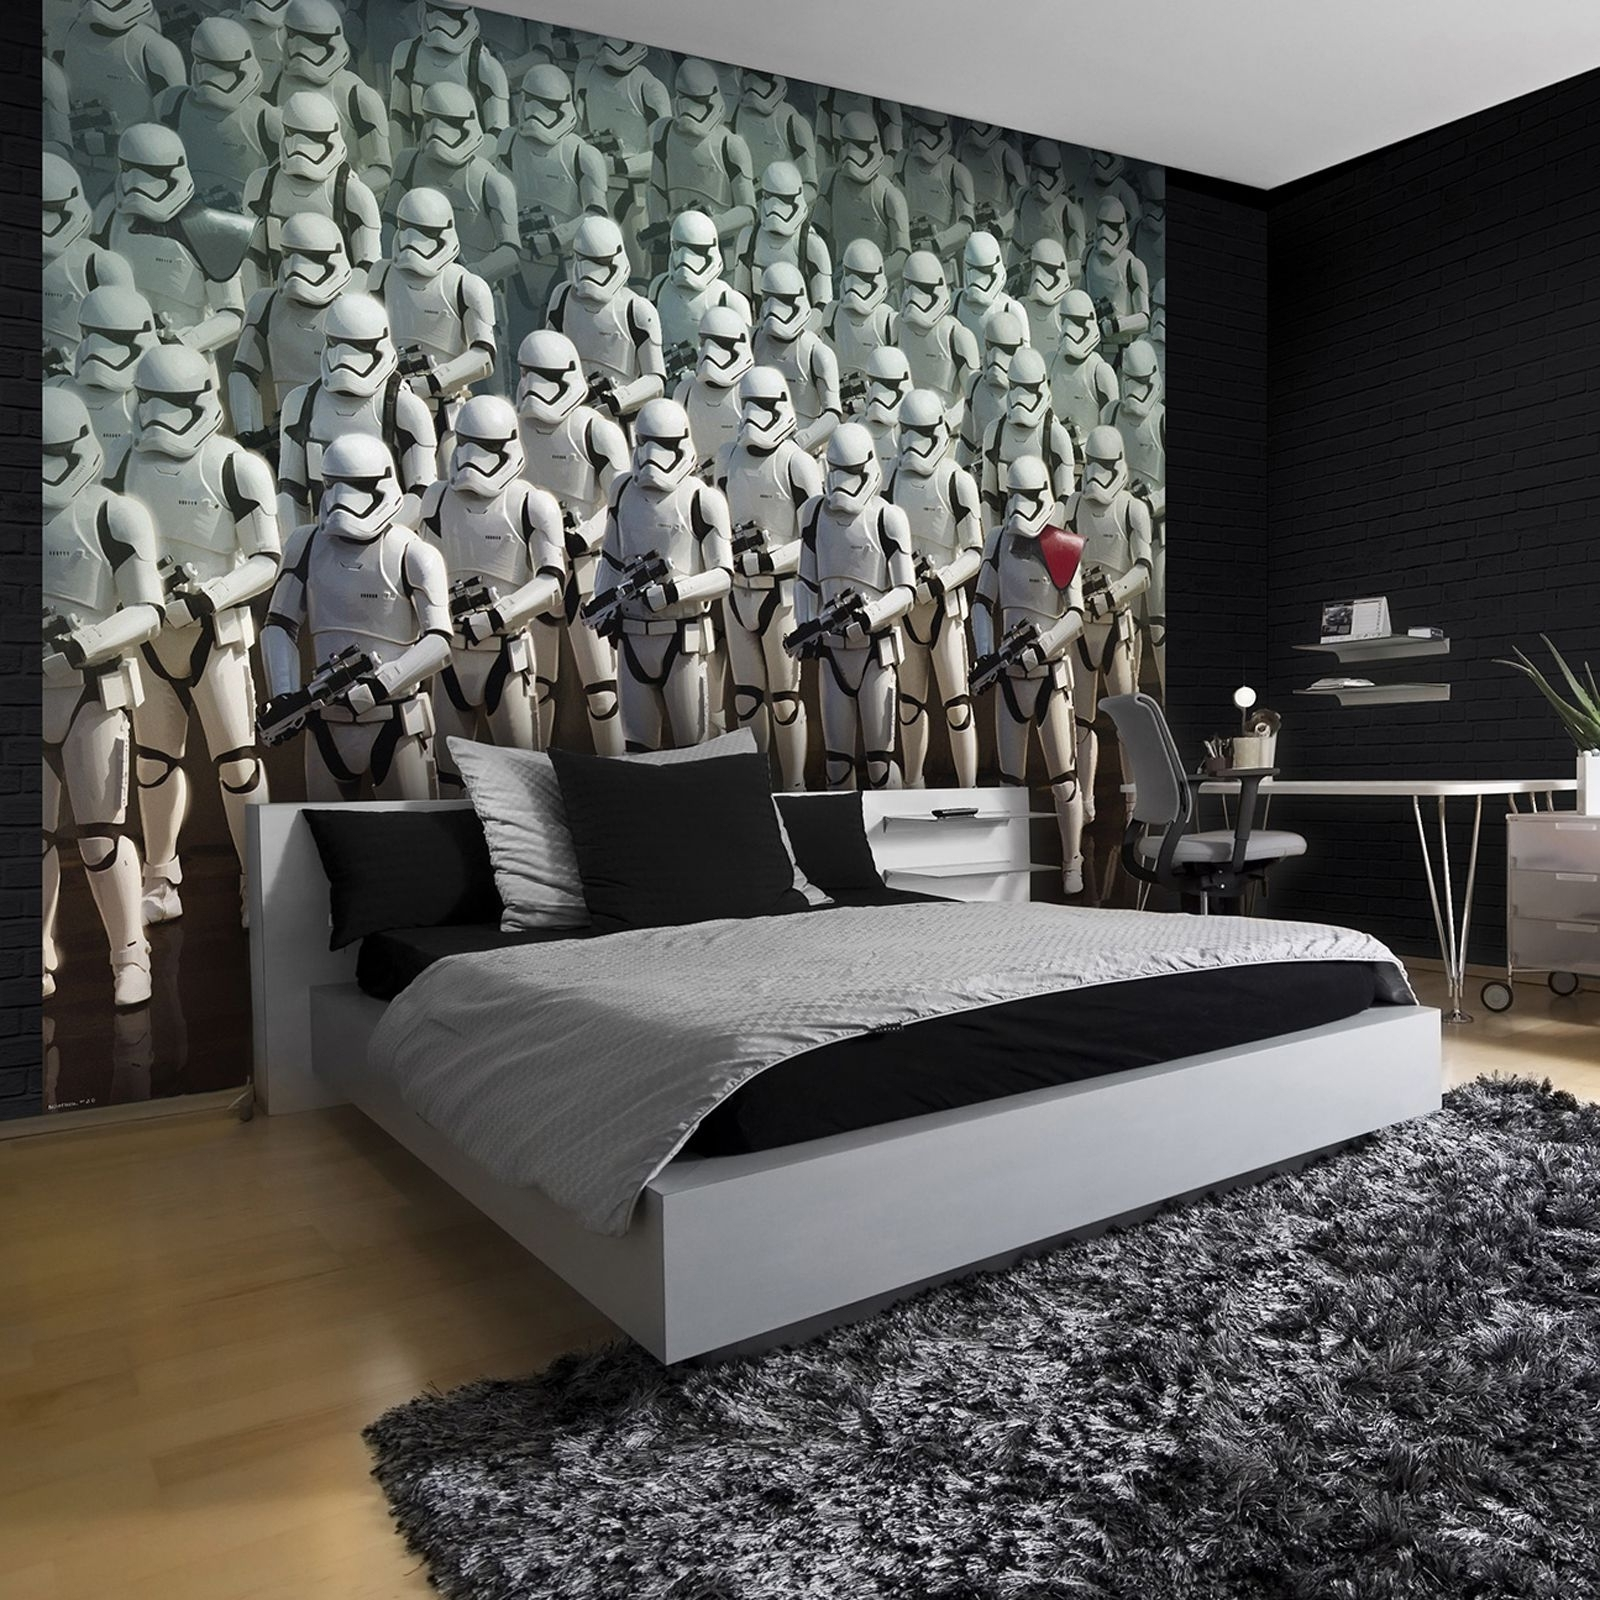 Star Wars Wall Art Bedroom : Andrews Living Arts – Fantastic Room Throughout Popular Star Wars Wall Art (View 10 of 15)